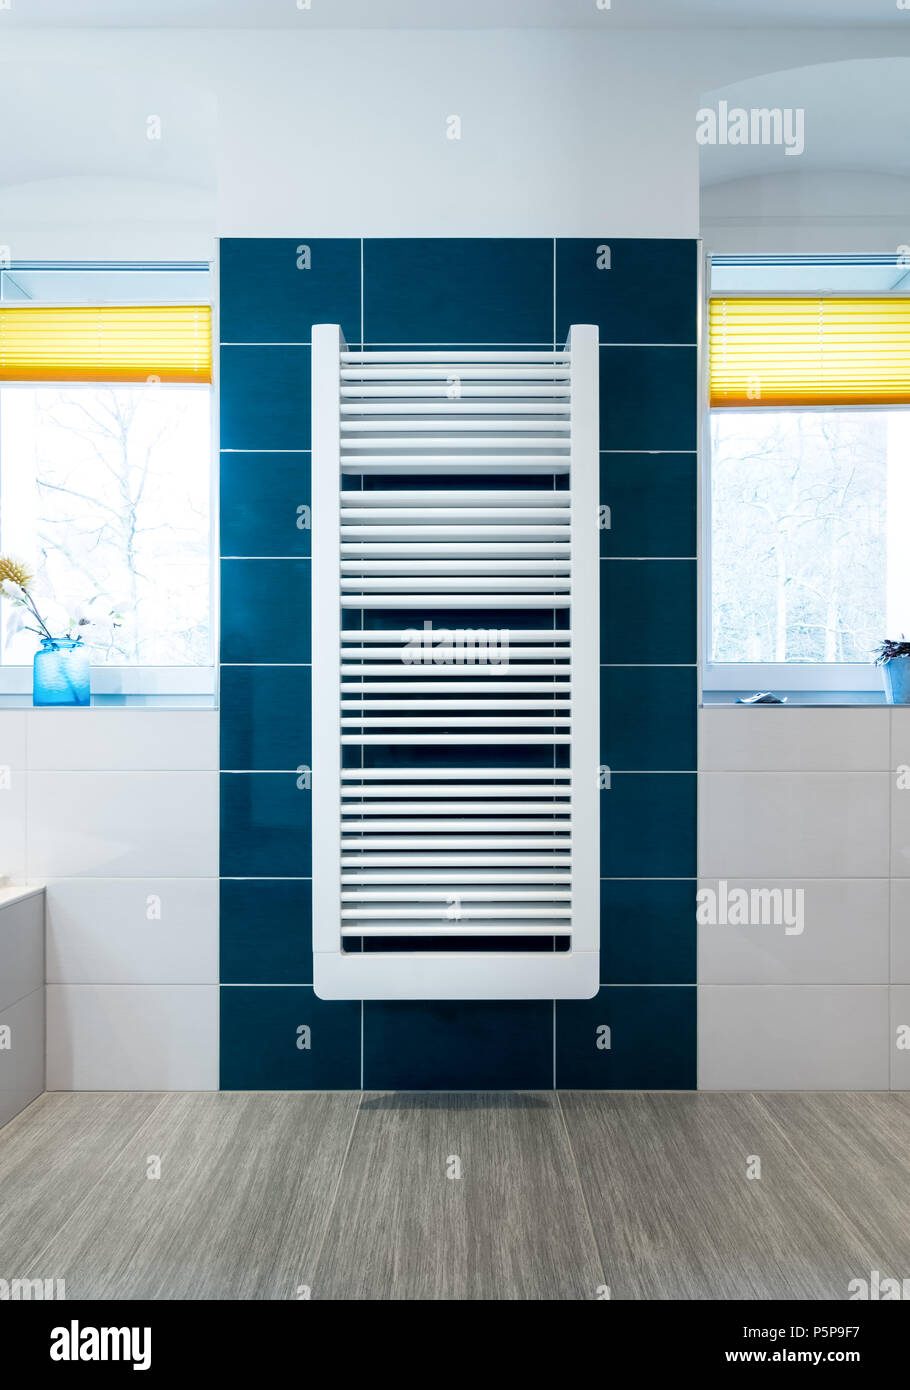 White towel dryer on a blue tiled bathroom wall Stock Photo ...